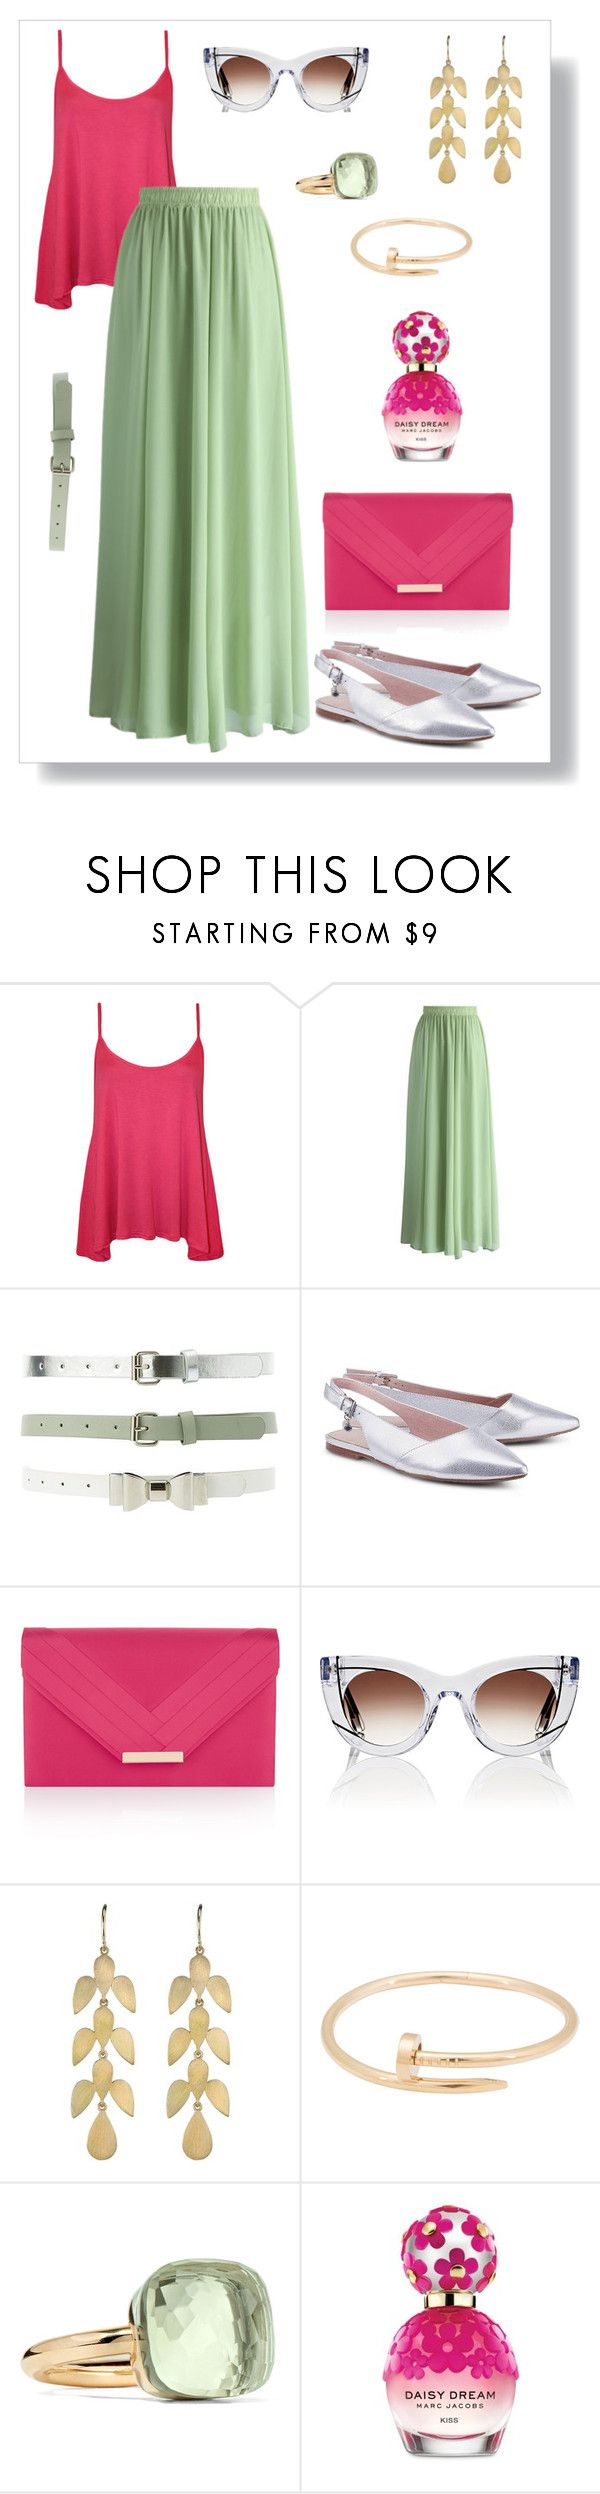 """""""№ 456"""" by tigrpuh ❤ liked on Polyvore featuring WearAll, Chicwish, Charlotte Russe, Accessorize, Thierry Lasry, Irene Neuwirth, Cartier, Pomellato and Marc Jacobs"""